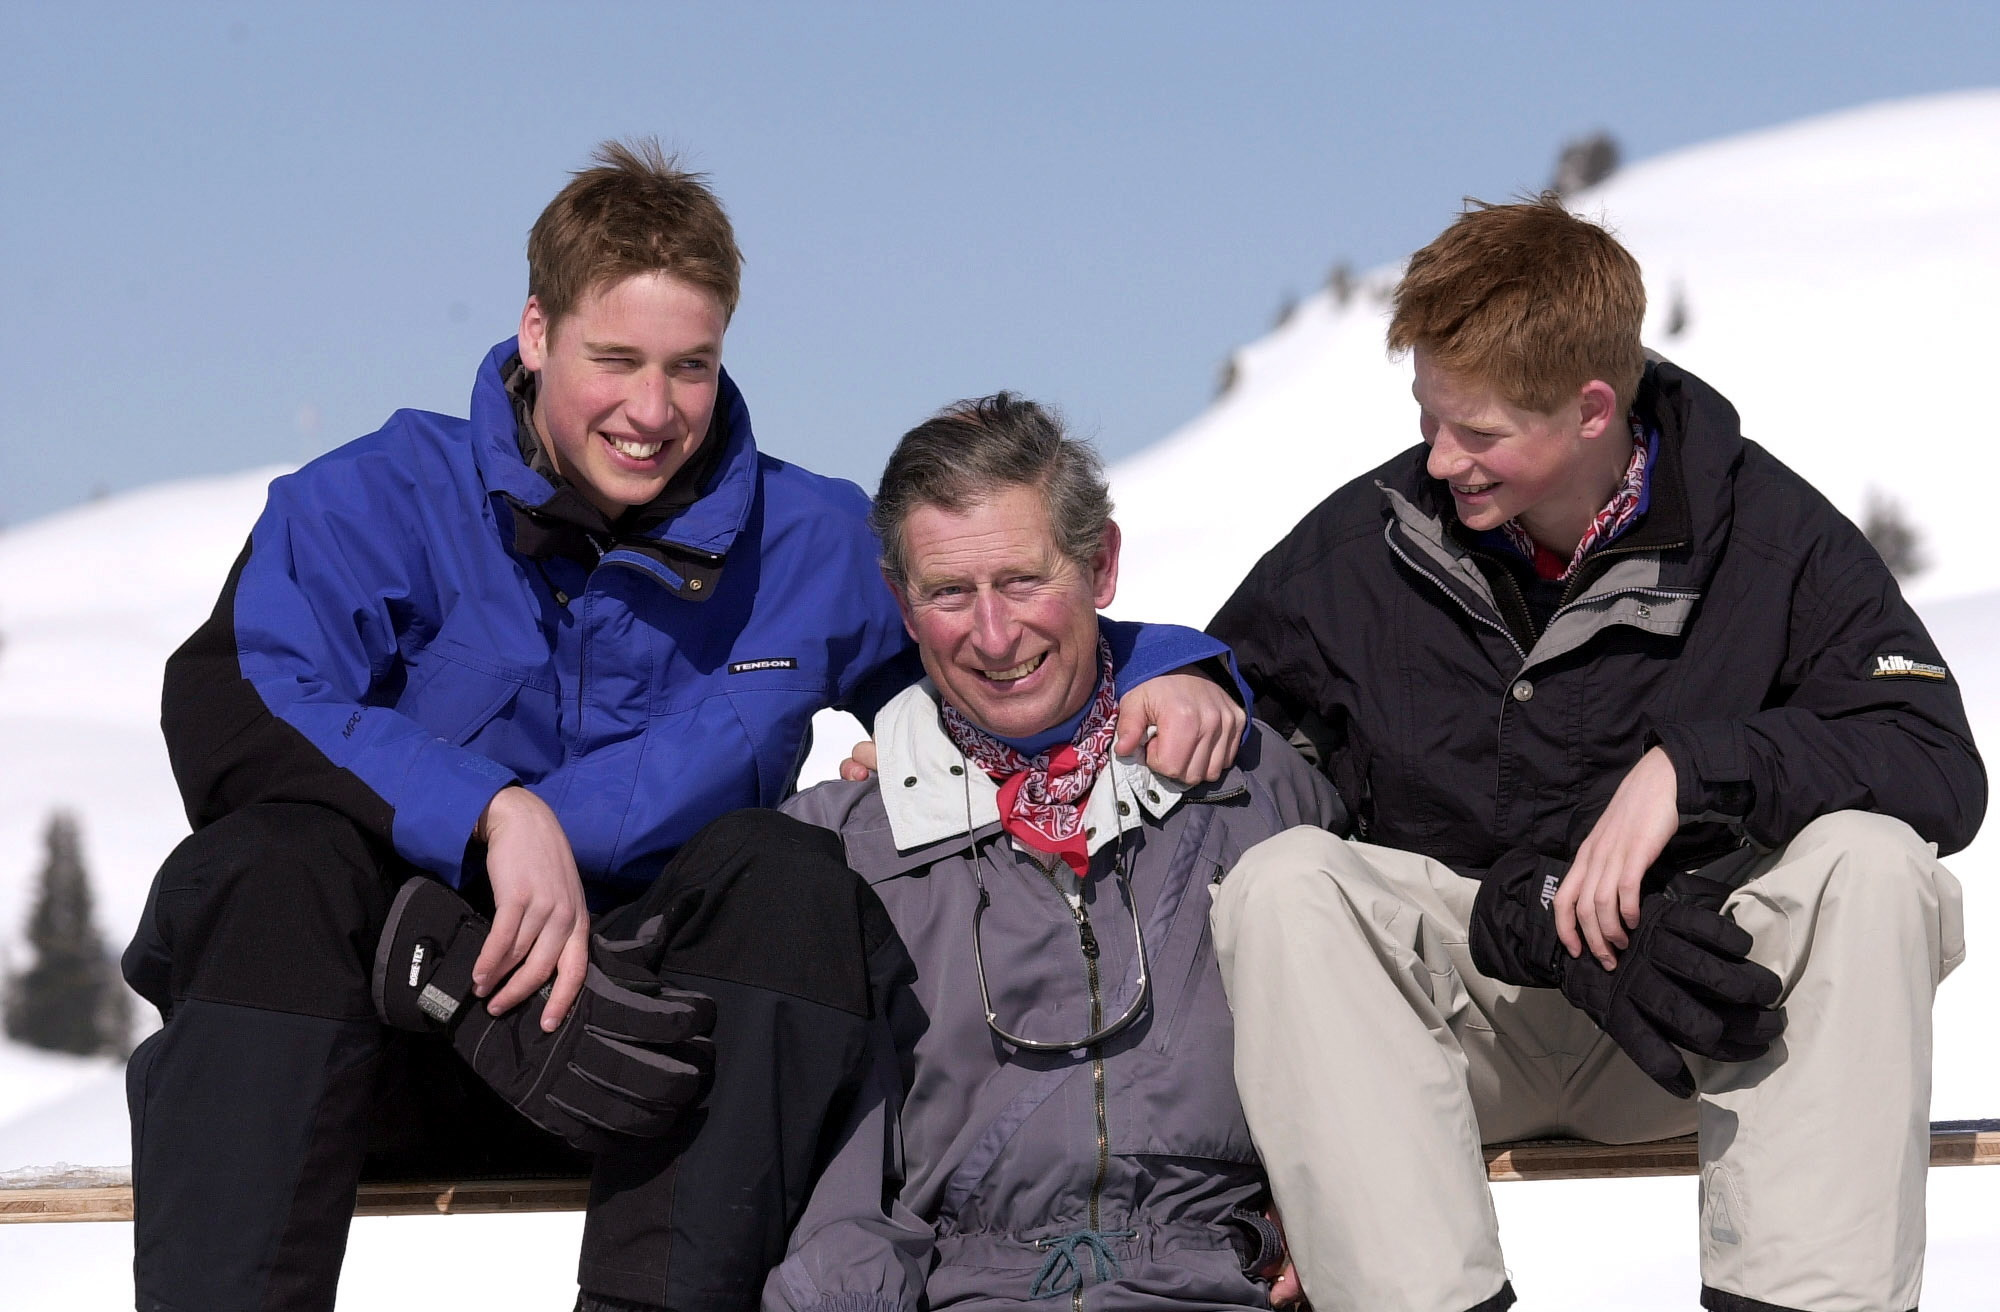 Prince Charles, Prince William and Prince Harry on a skiing holiday in Klosters, Switzerland on April 7, 2000.